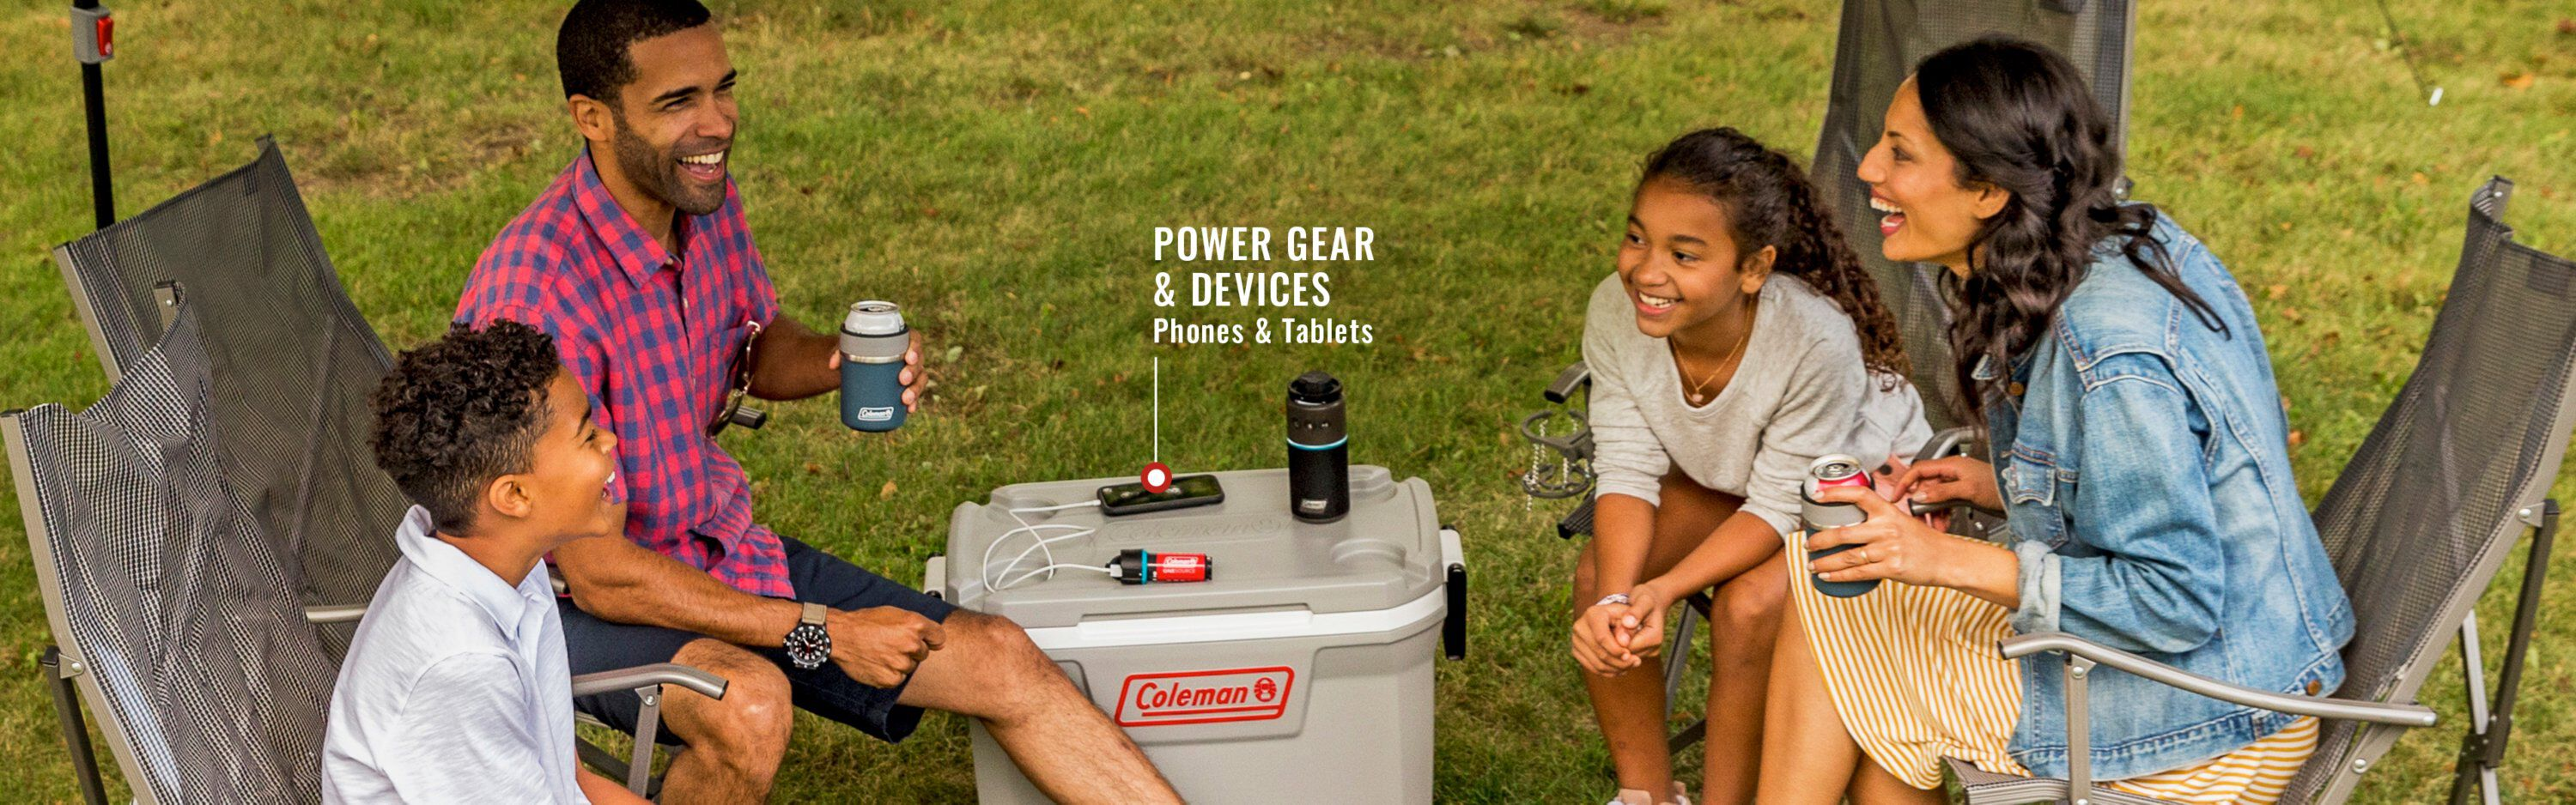 Portable recharge battery